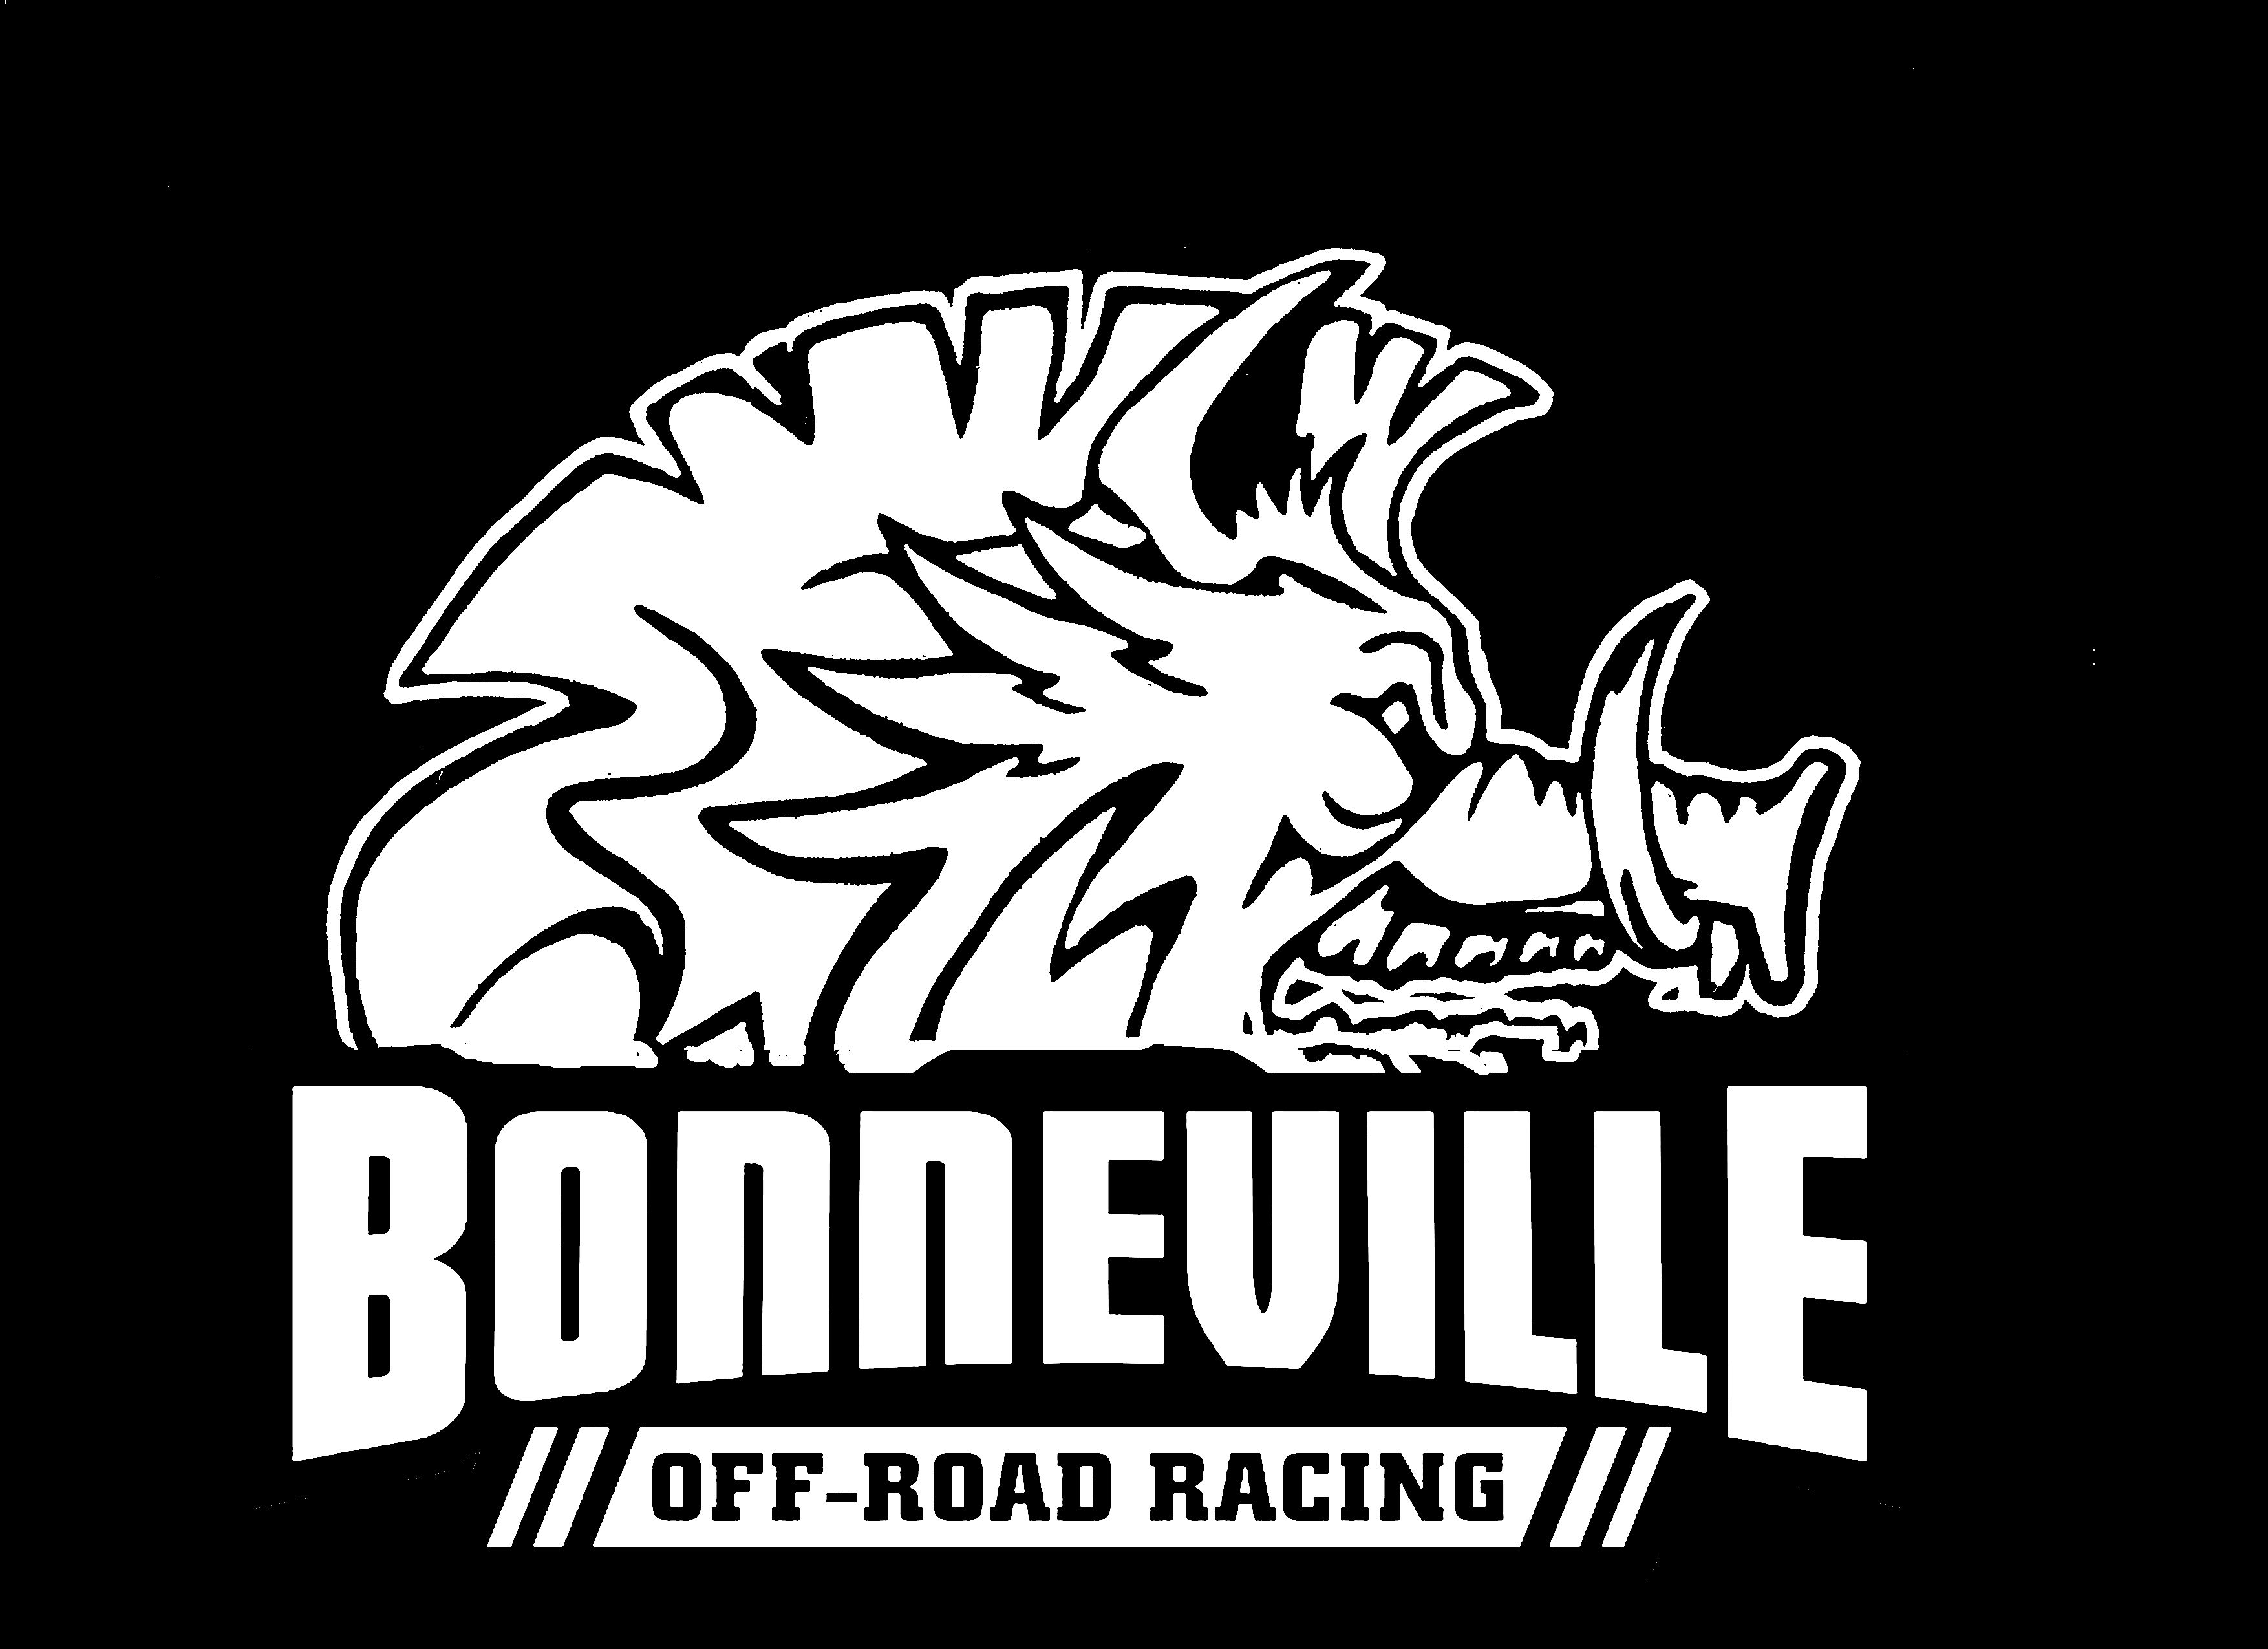 BOAR with logo silhouette inverted.jpg